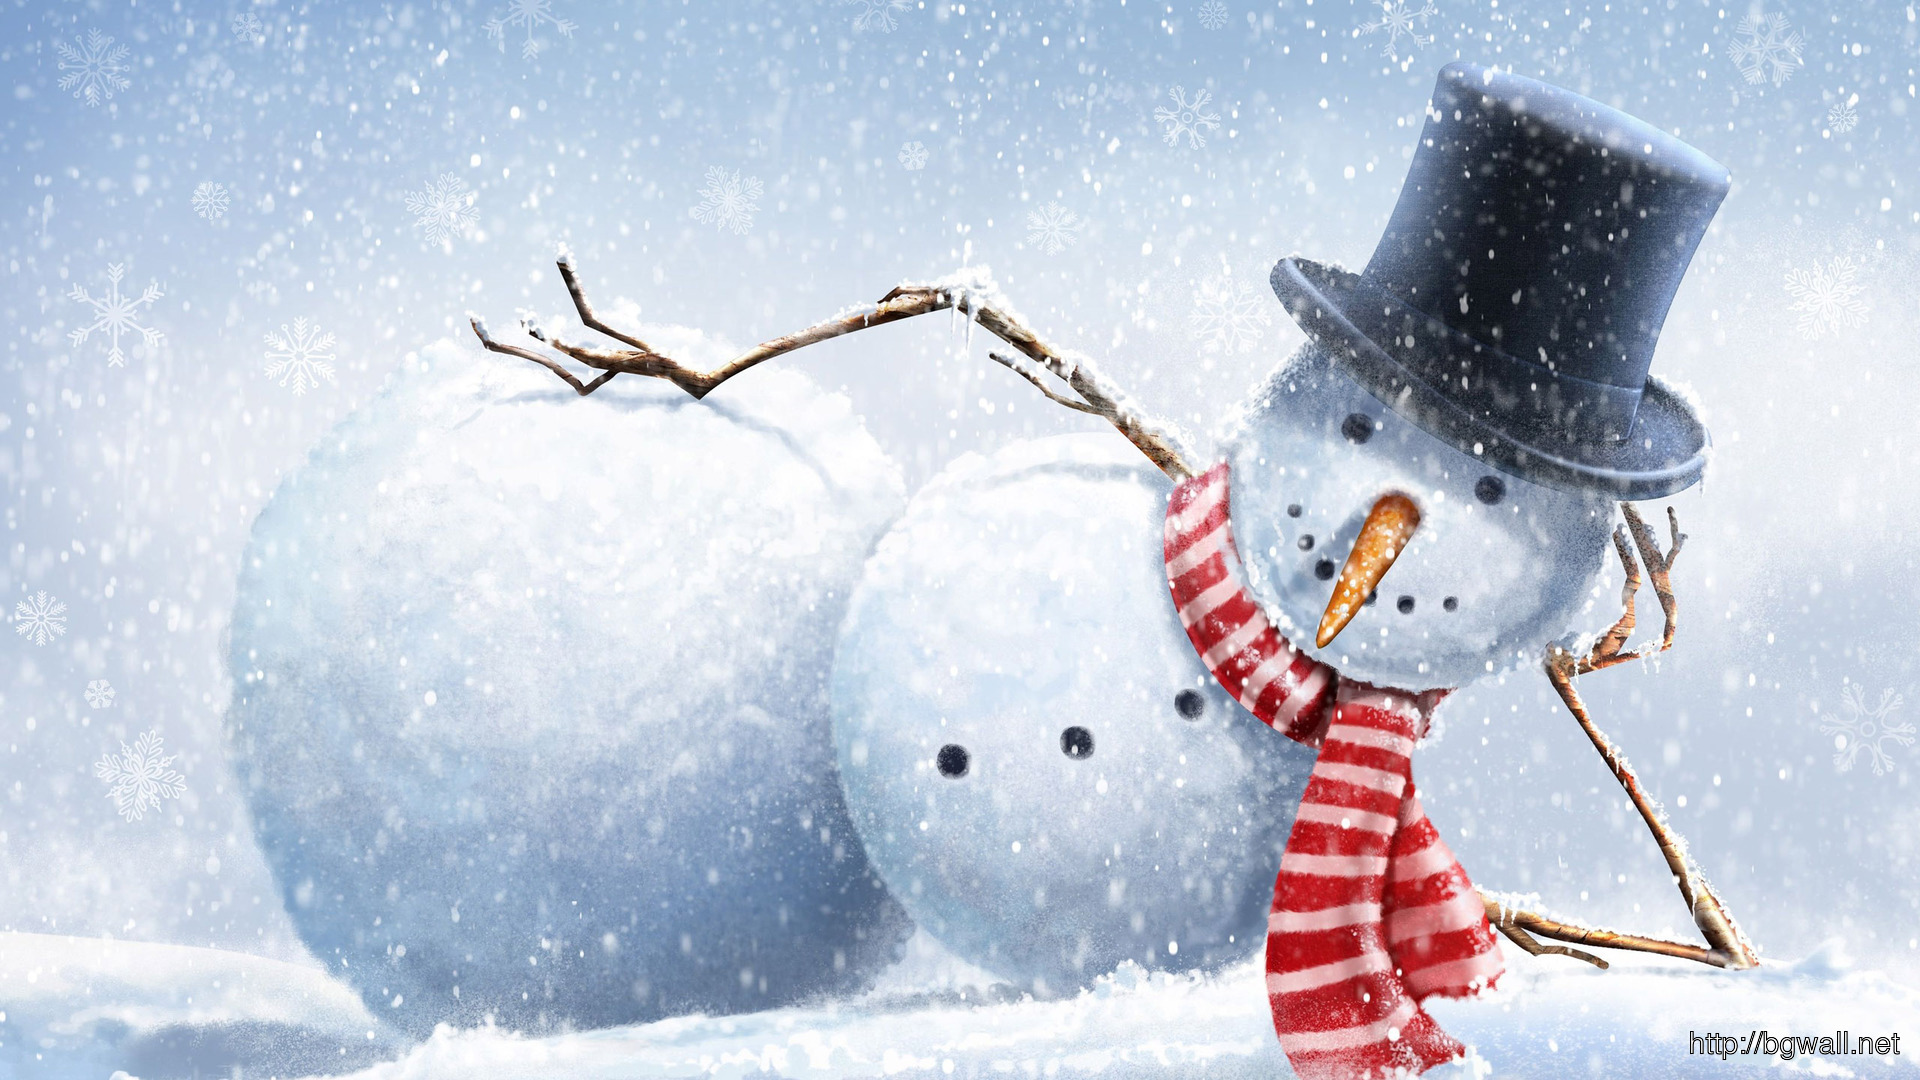 Snowman Chilling Wallpaper 16985 Full Size